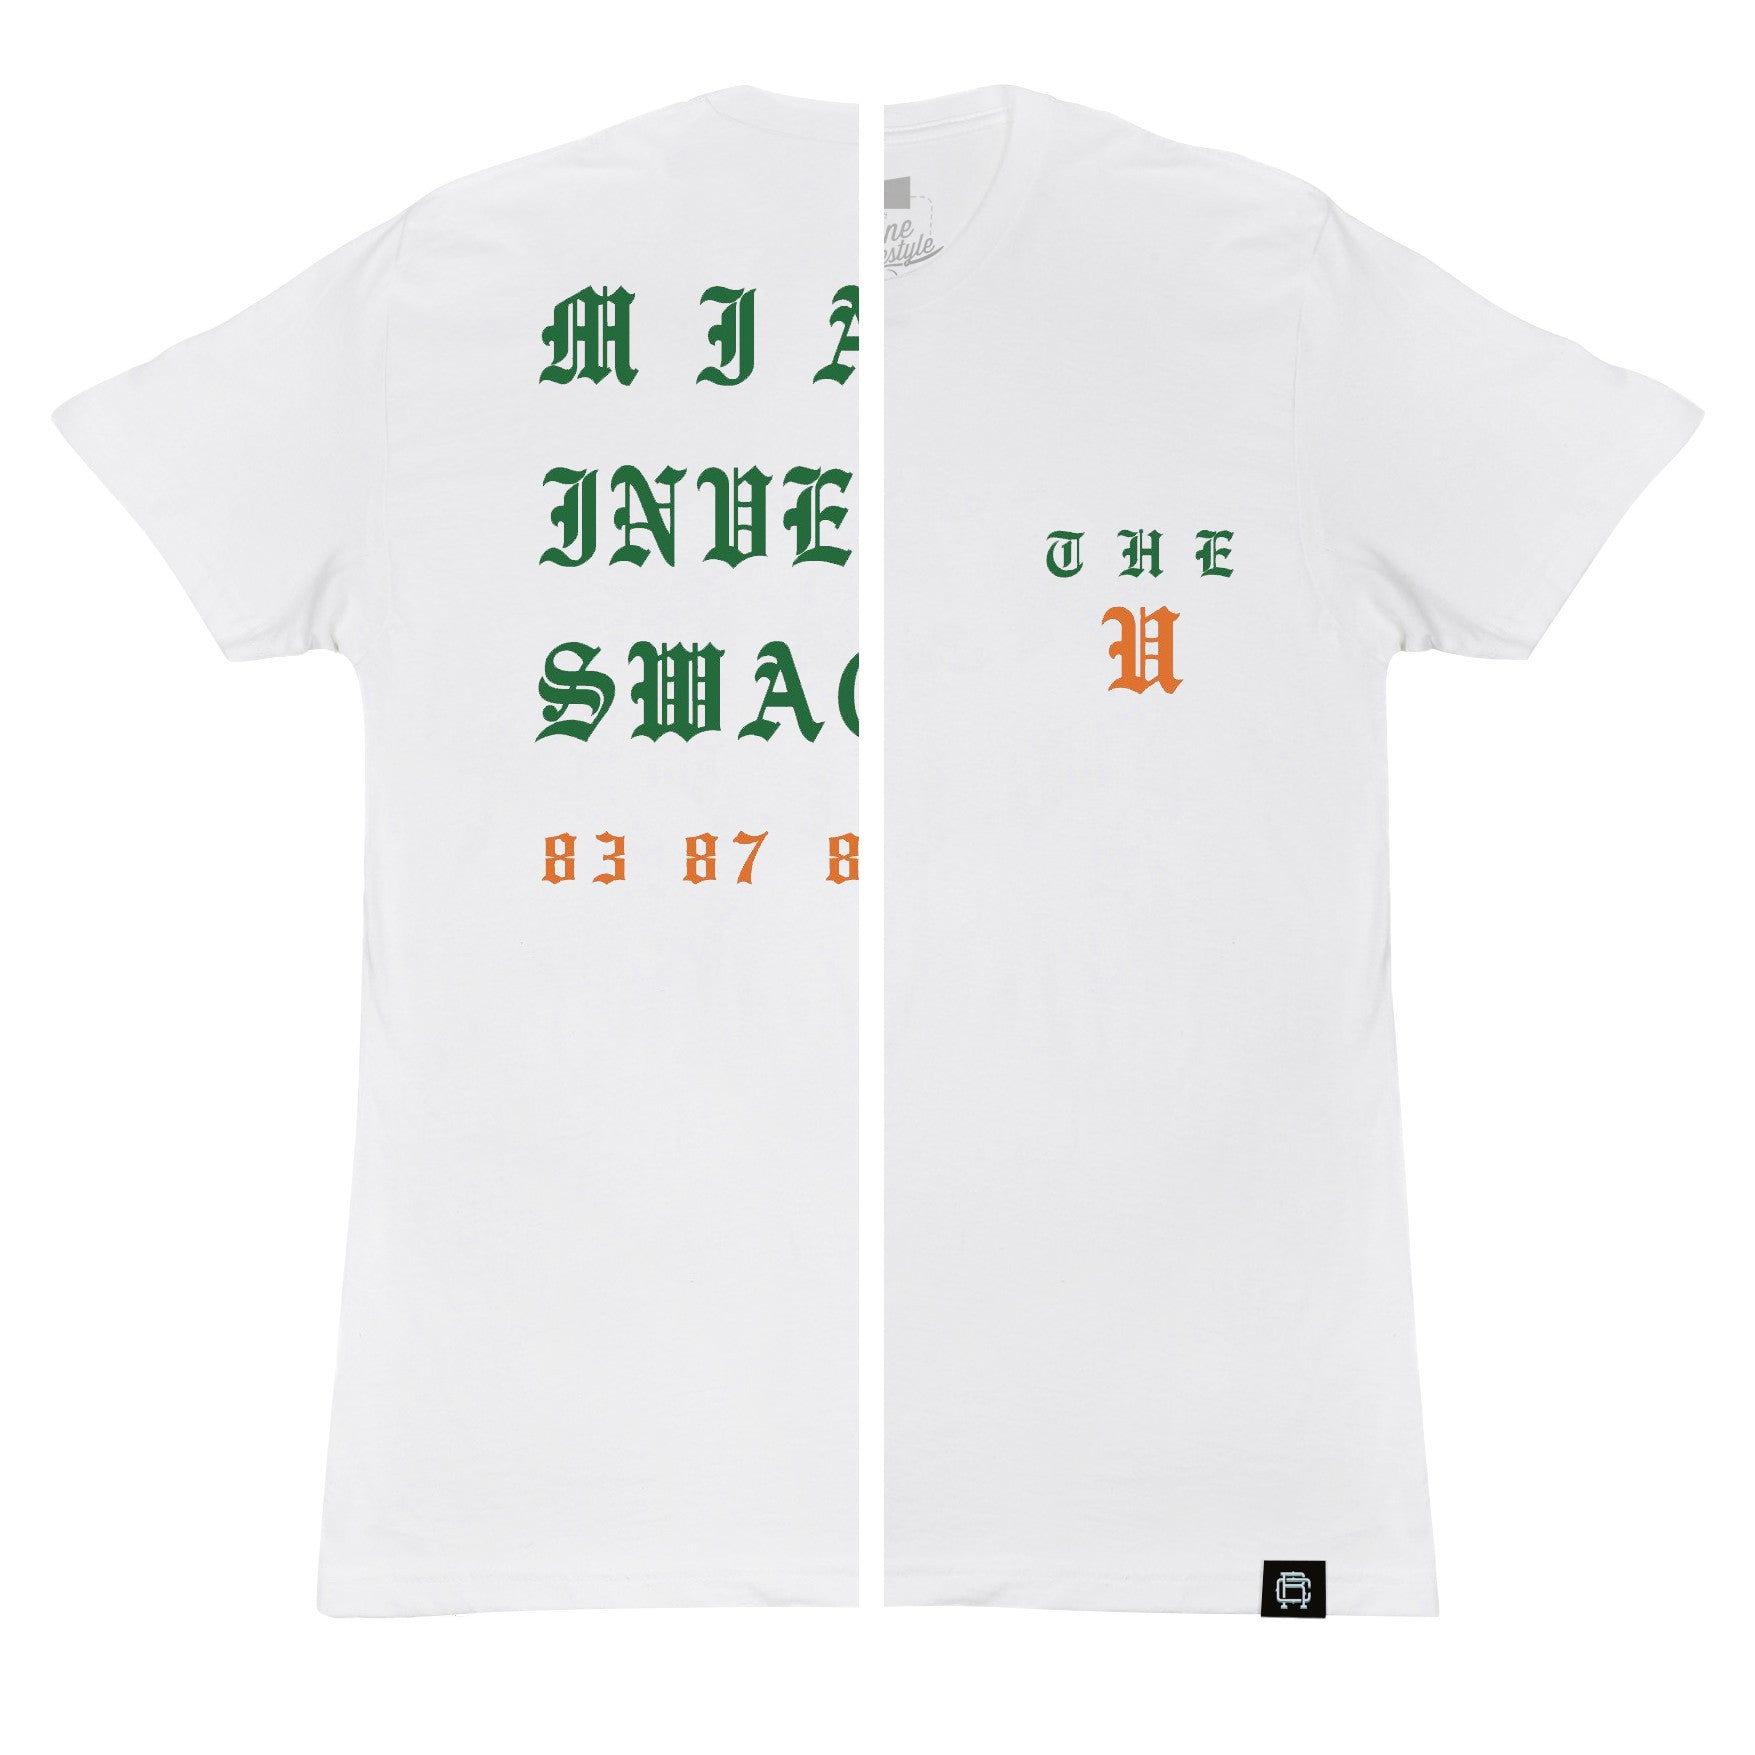 Rebul Collection The U University of miami t-shirt yeezy